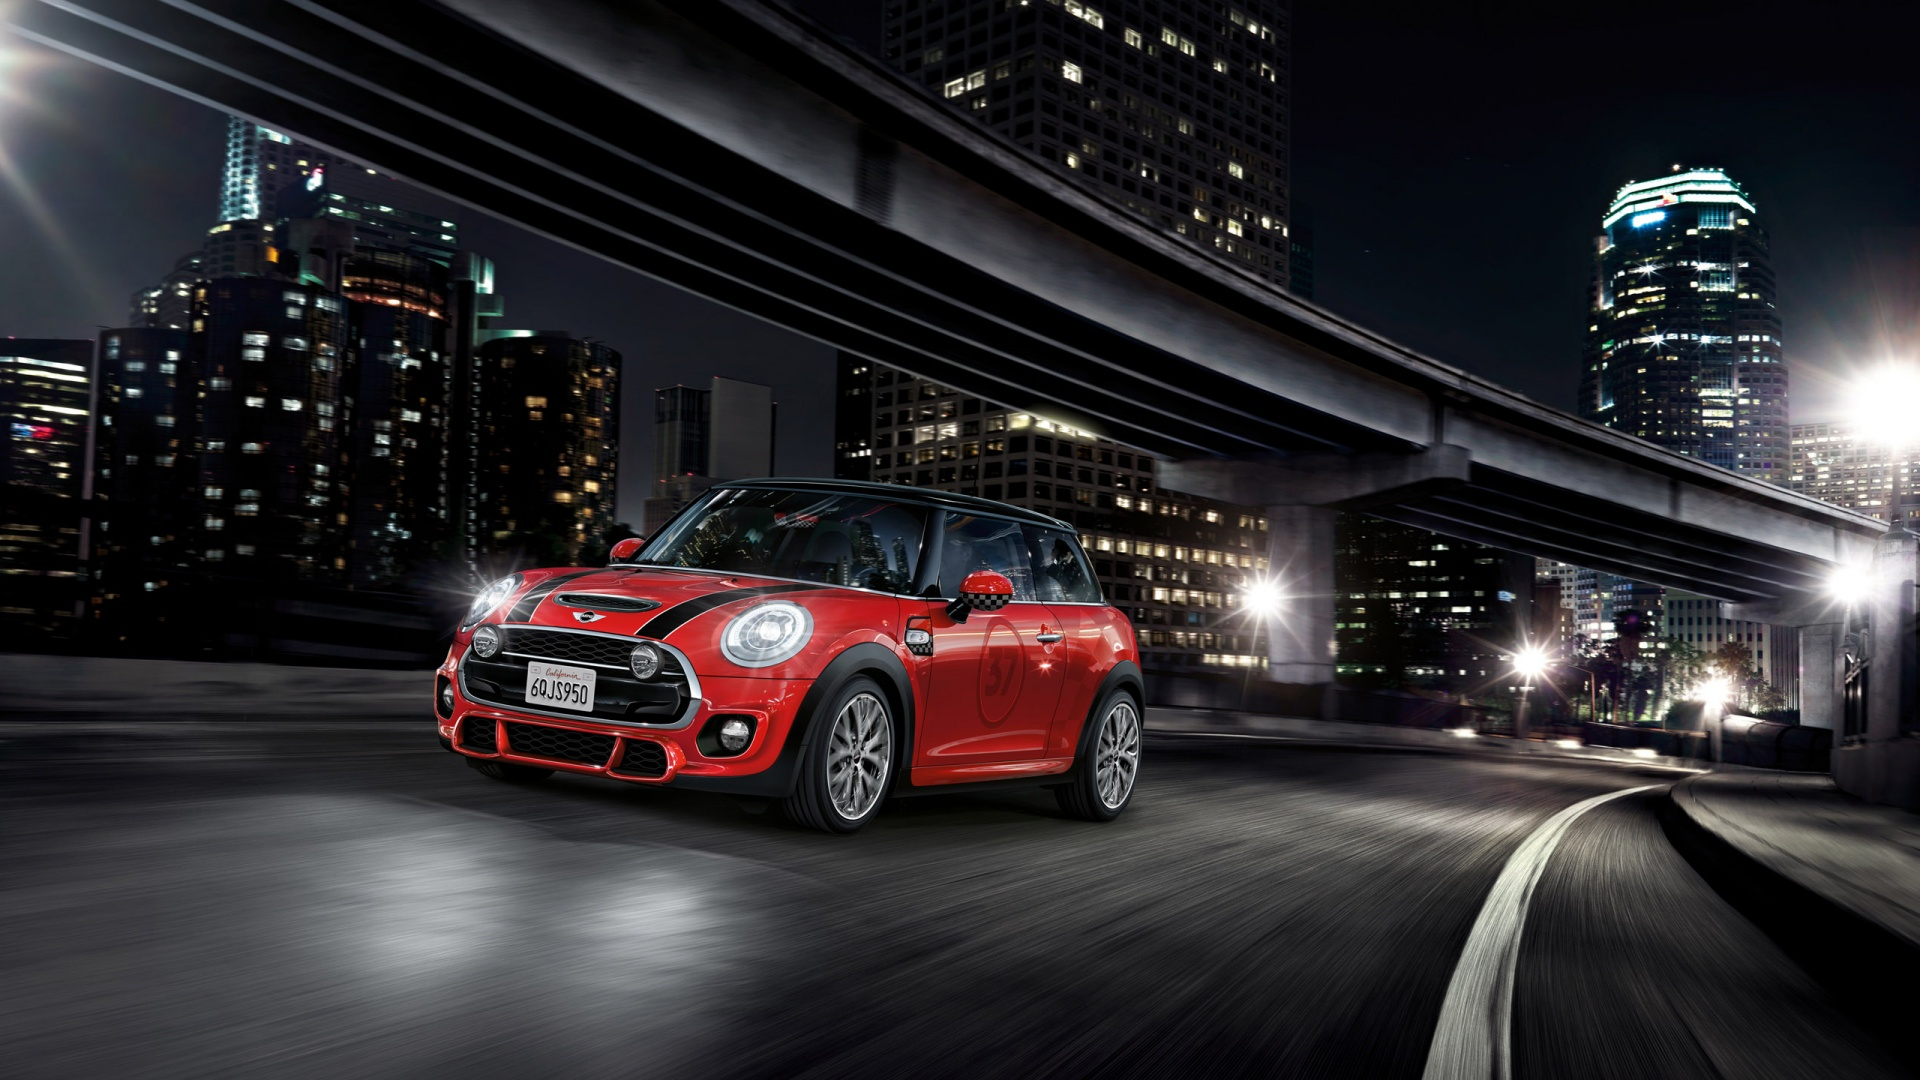 2014 Mini Cooper S F56 Wallpaper HD Car Wallpapers 1920x1080